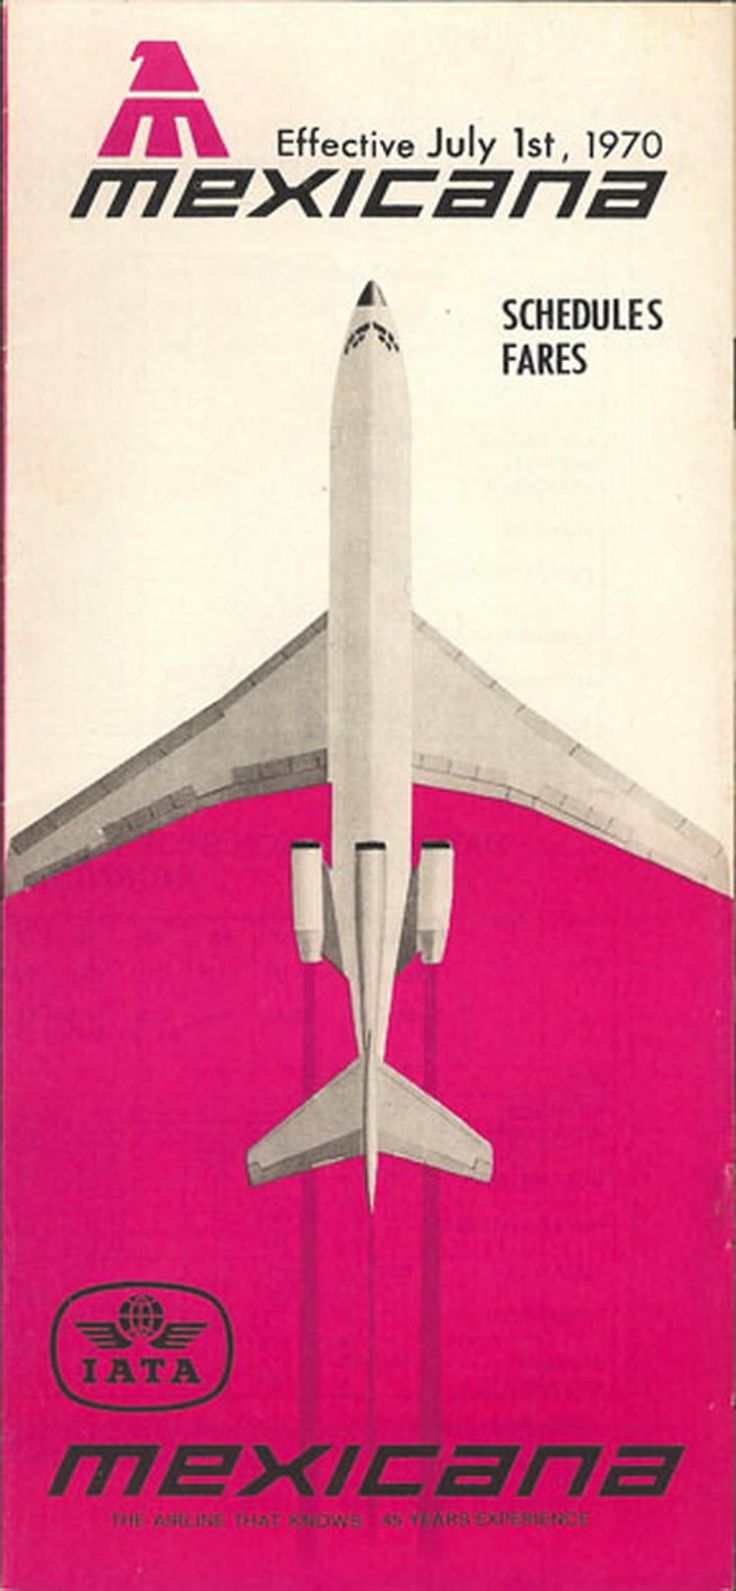 Vintage airline timetable for MEXICANA Airlines - Website Credit Here - http://www.aviationexplorer.com/vintage_airline_timetables.html